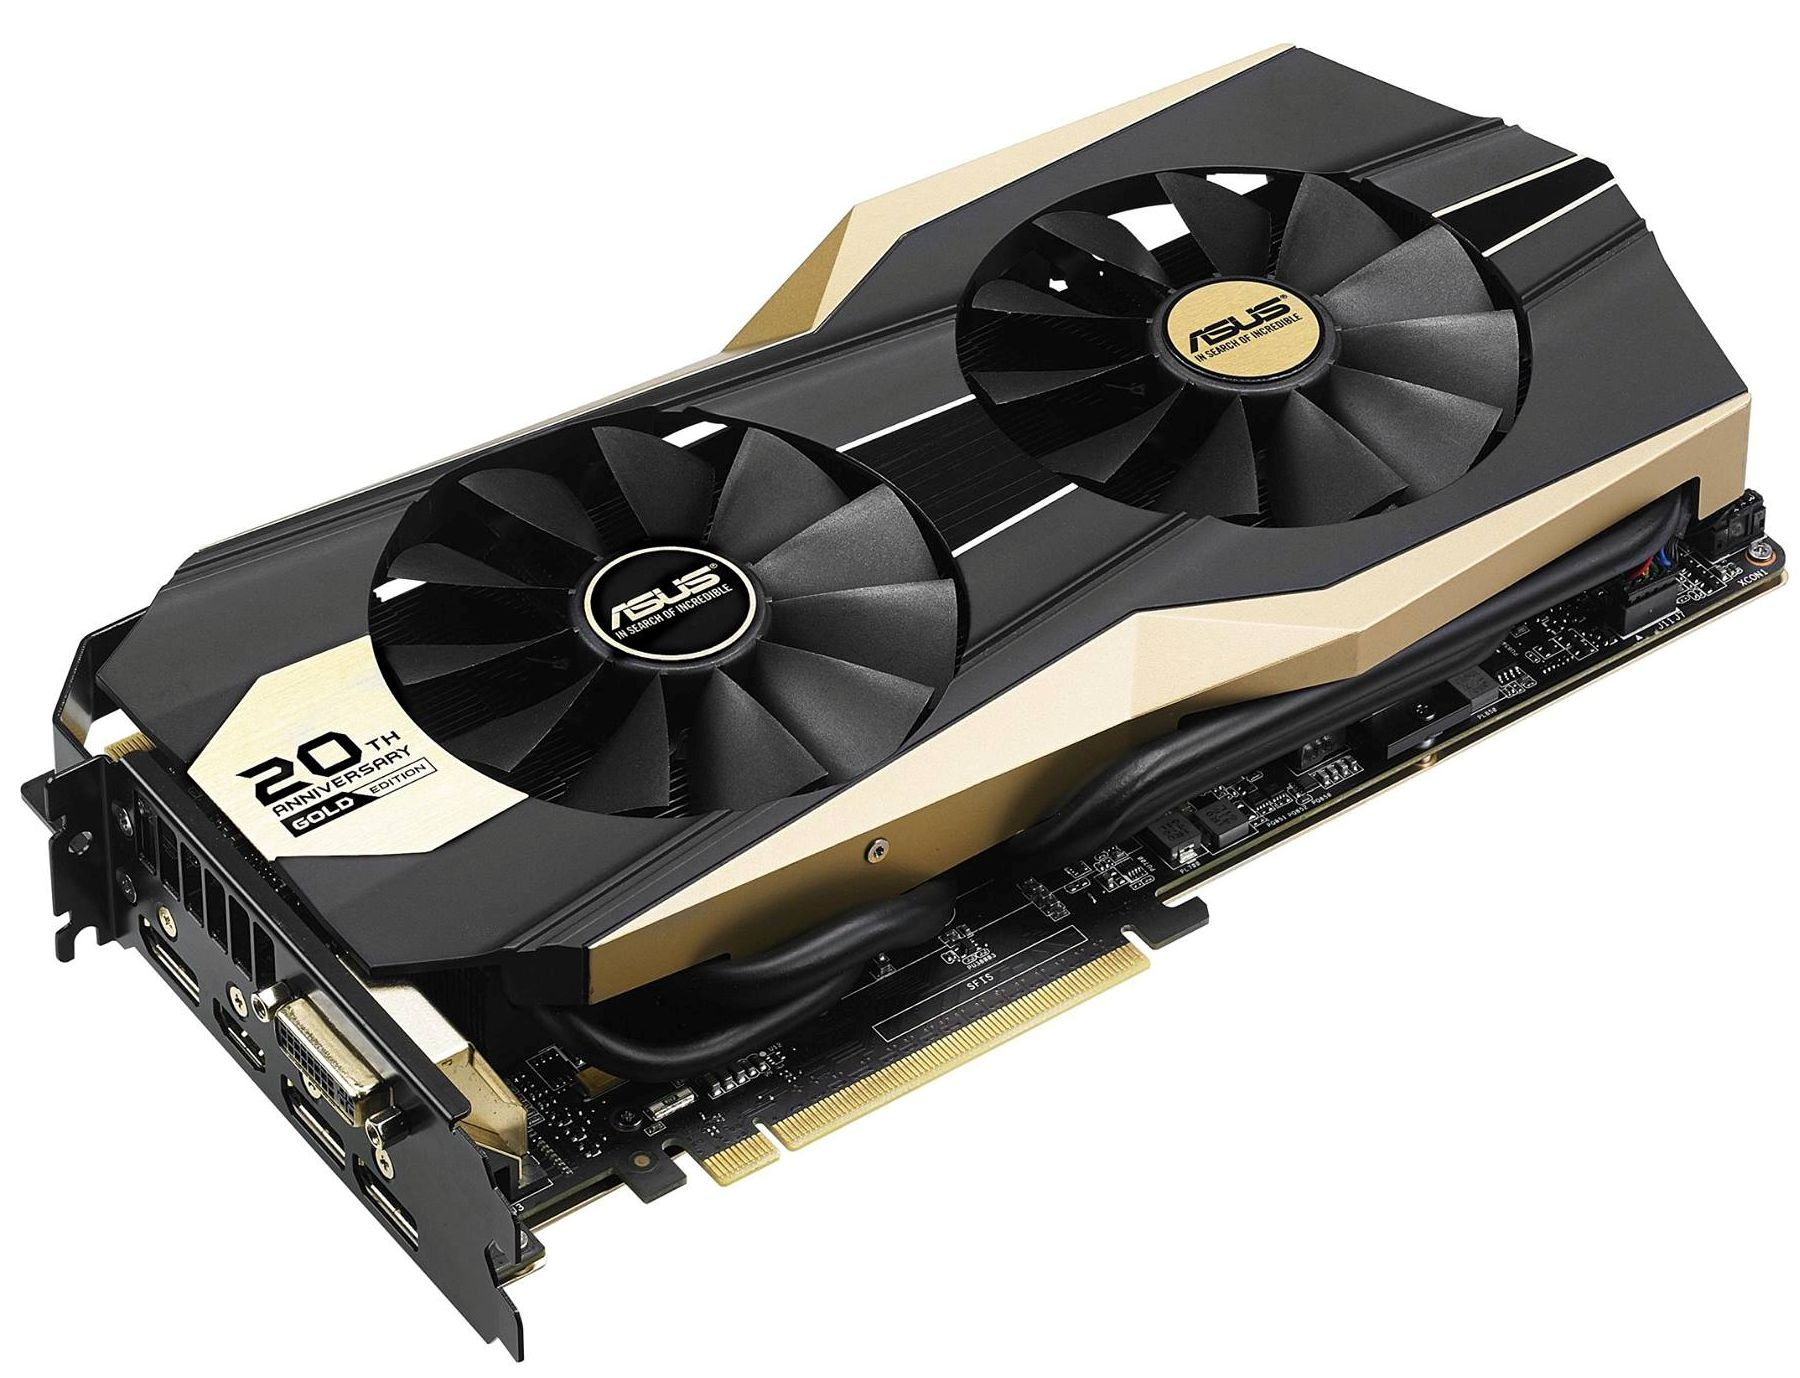 ASUS-GTX-980-GOLD-EDITION-01